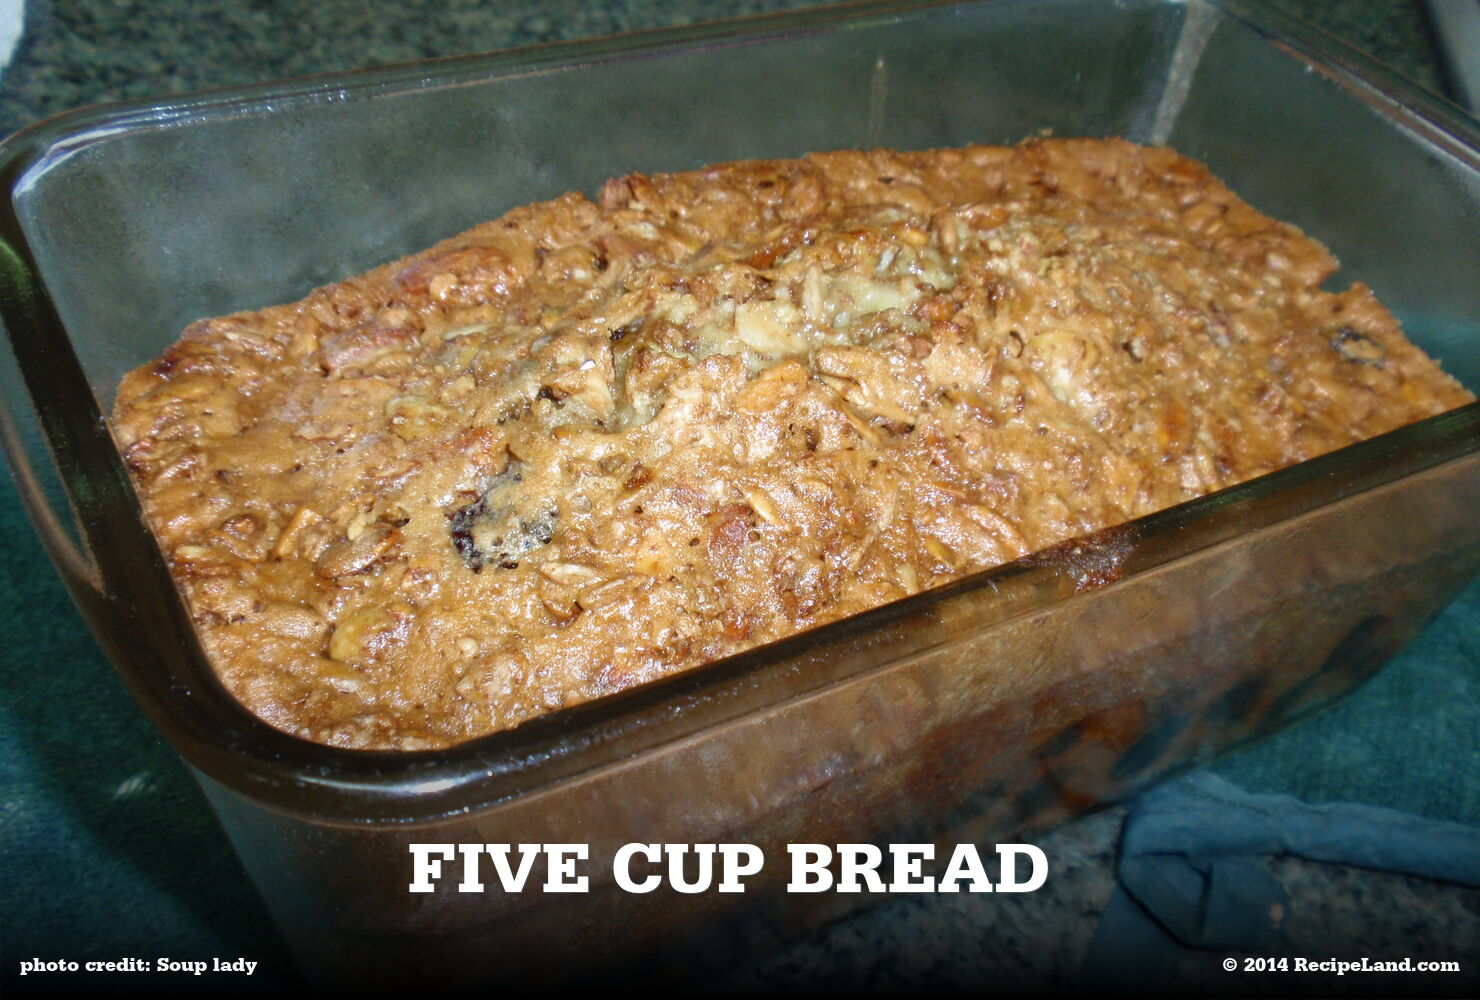 Five Cup Bread